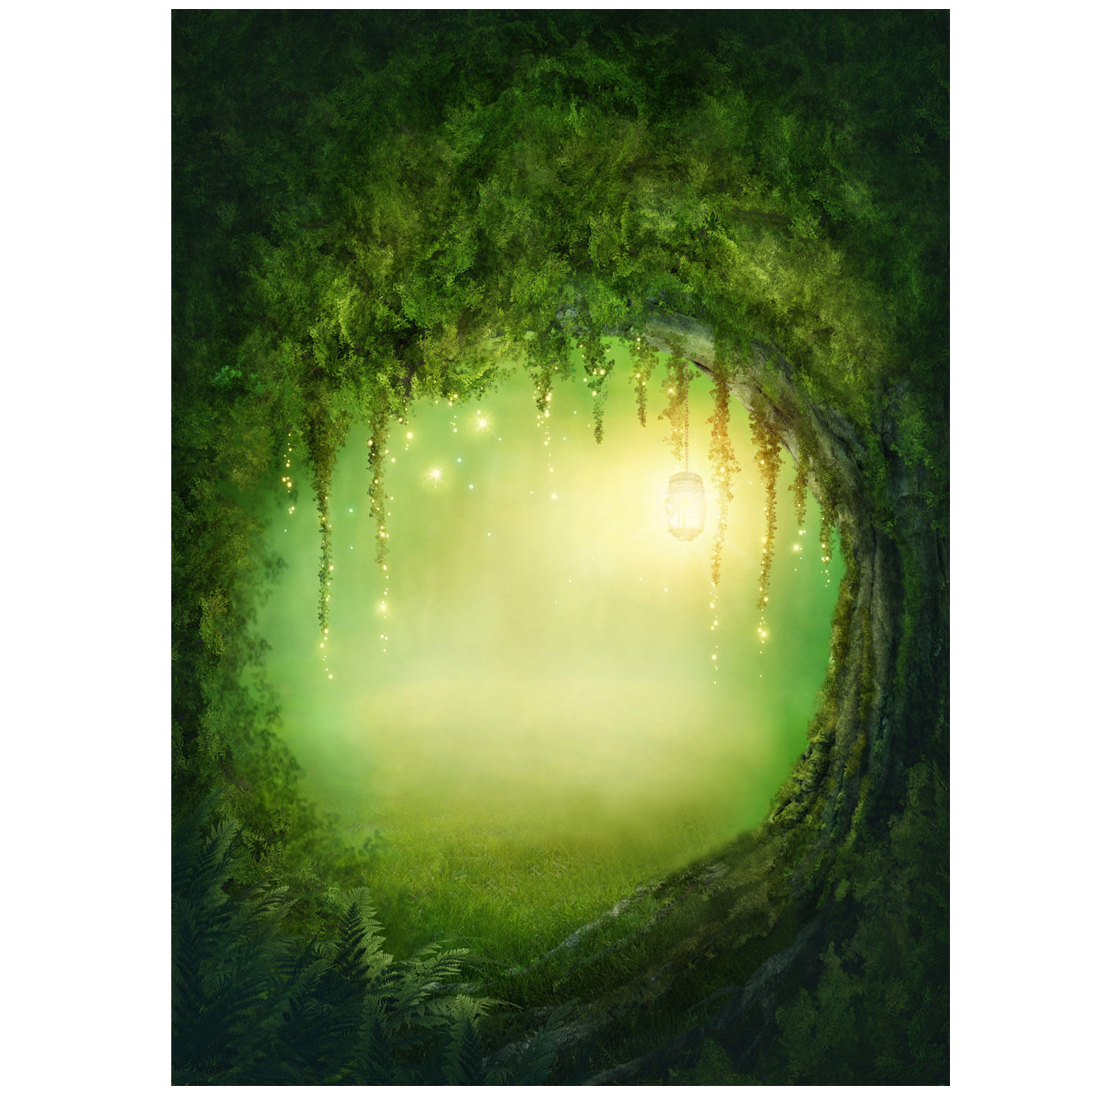 3X5FT Vinyl Studio Backdrop Photography Fairy Tale Forest Photo Background Green